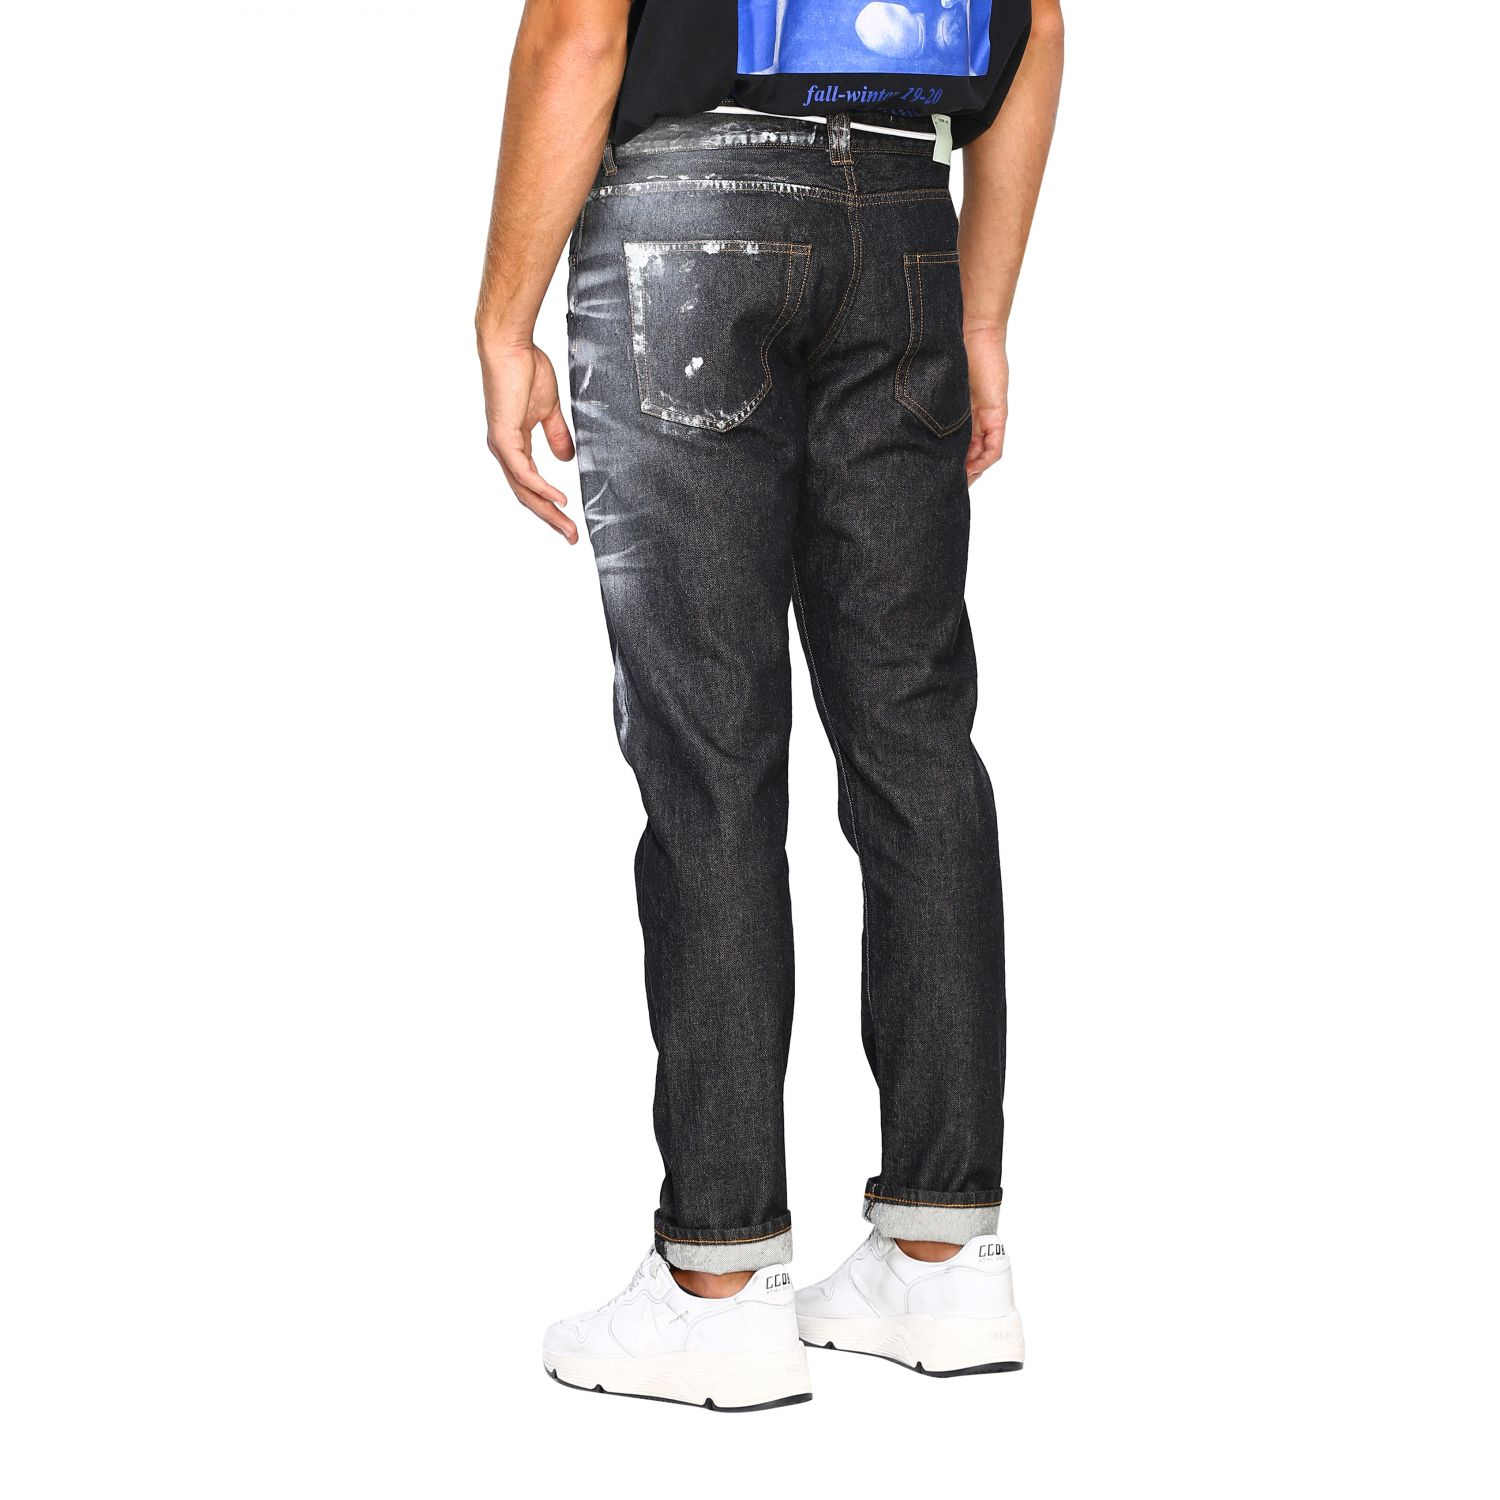 Jeans Off White: Jeans herren Off White schwarz 3